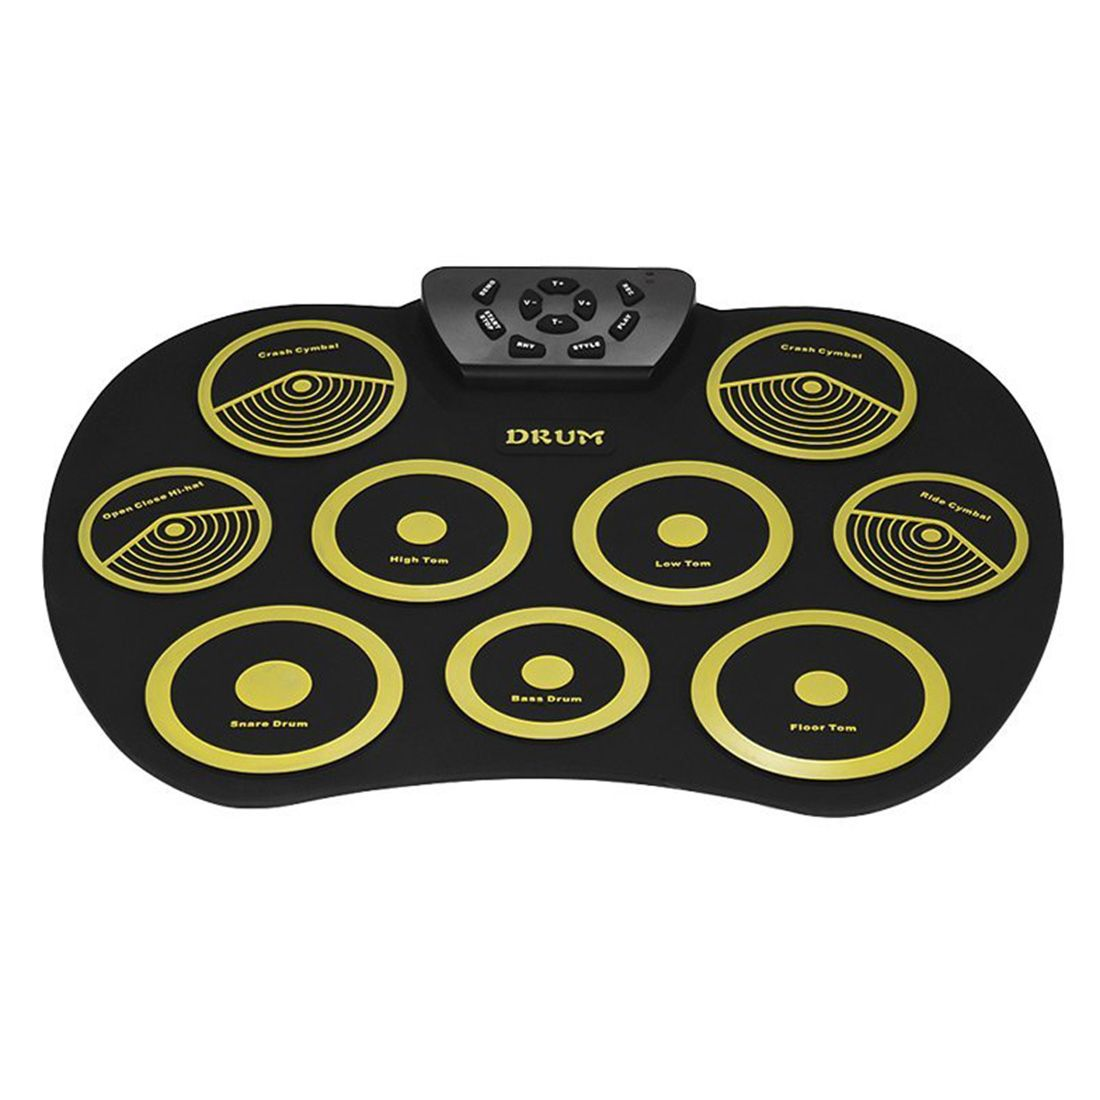 HOT-Portable Electronics Drum Set Roll Up Drum Kit 9 Silicone Pads USB Powered with Foot Pedals Drumsticks USB Cable